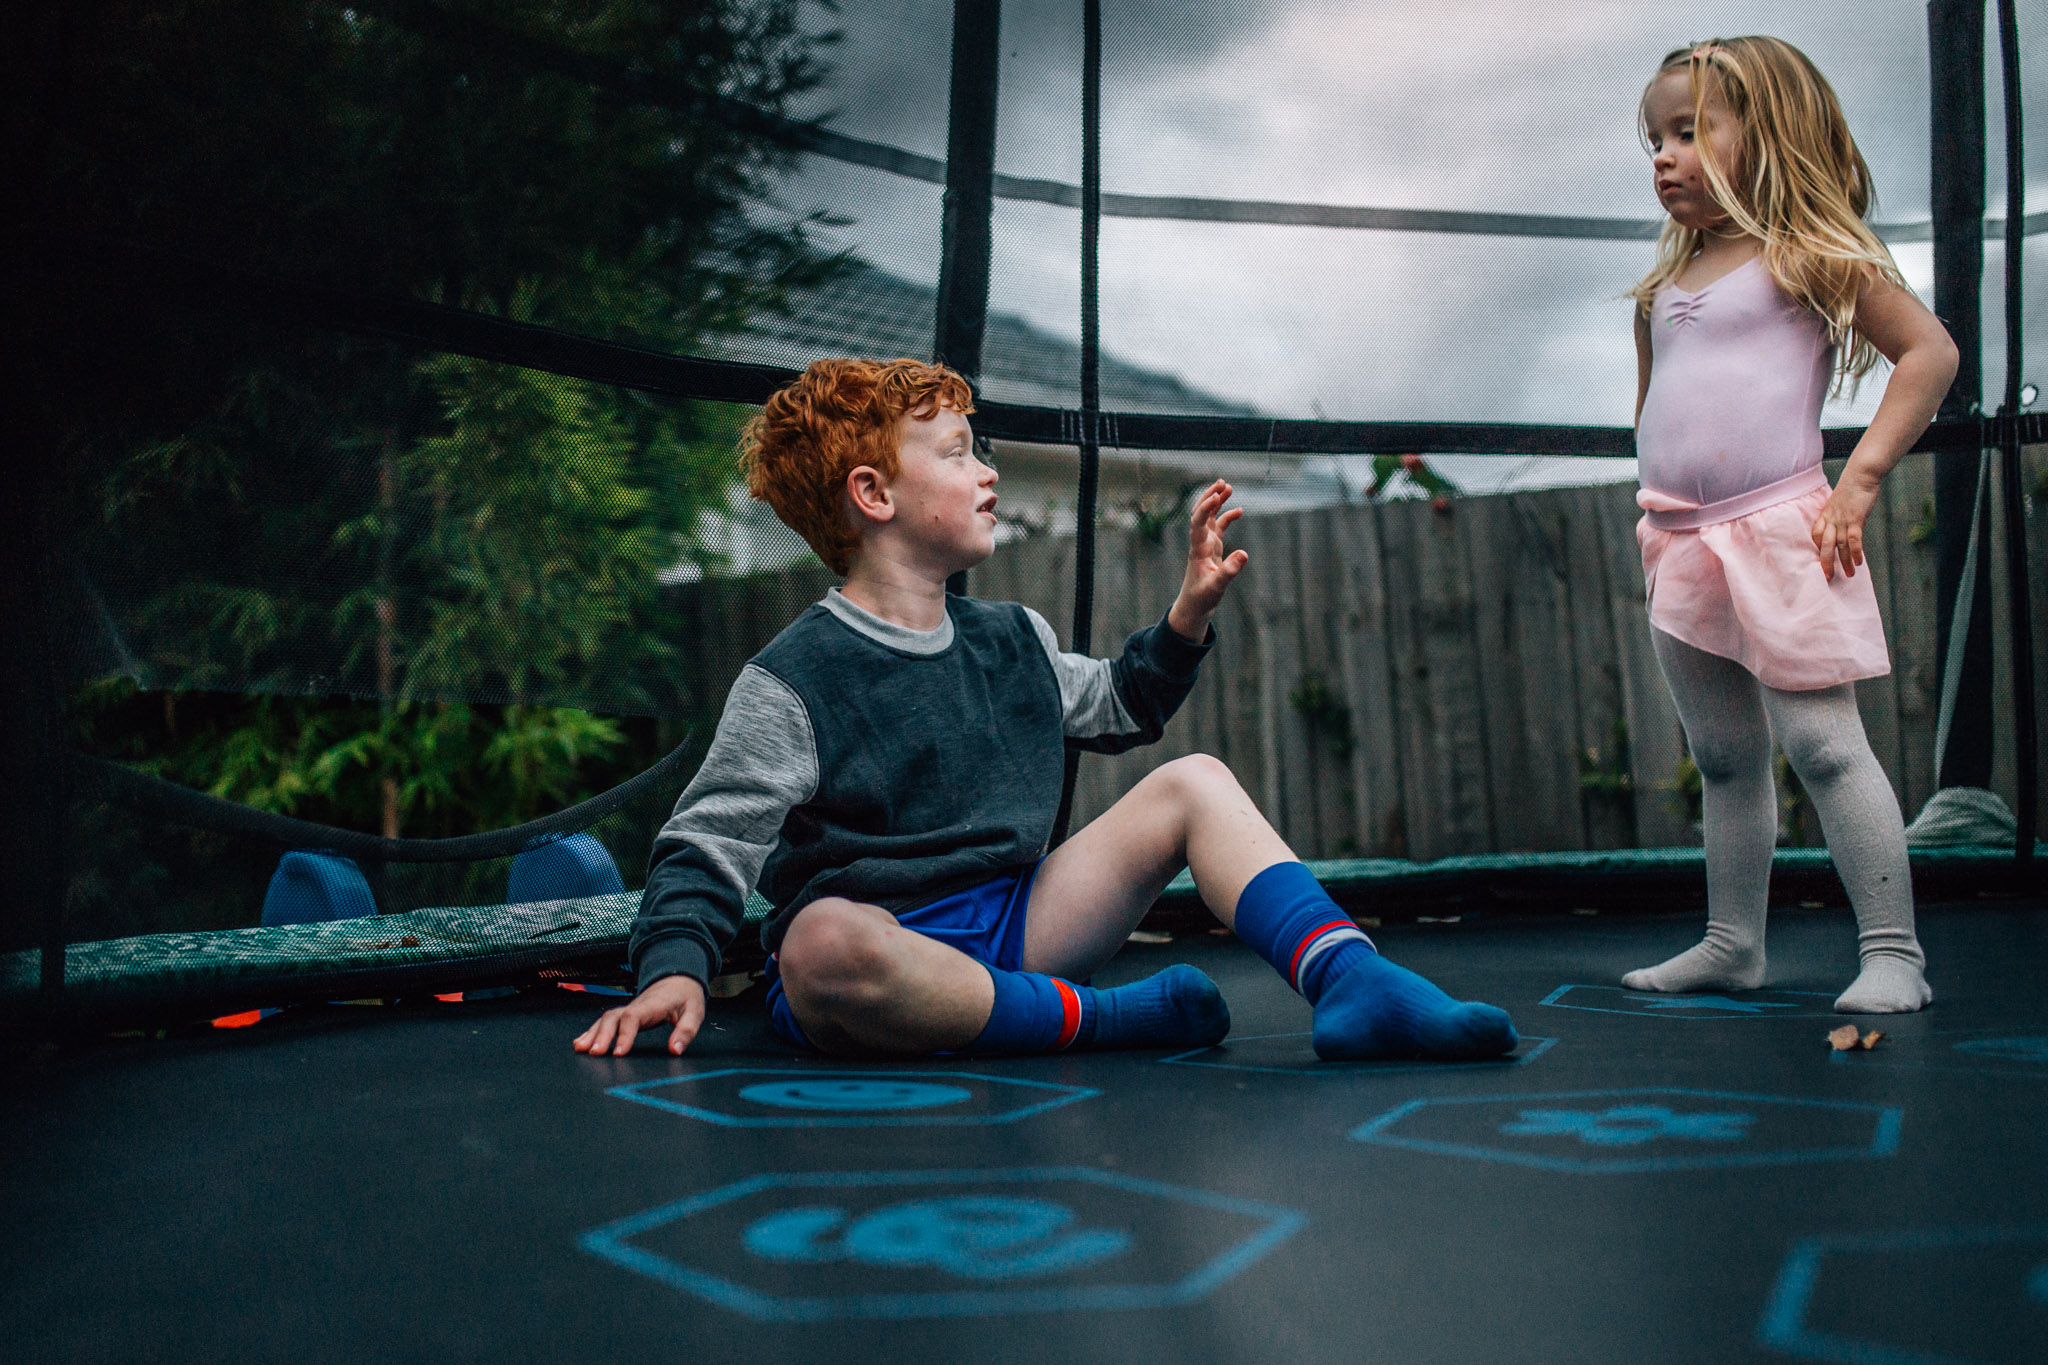 Girl and boy on trampoline.